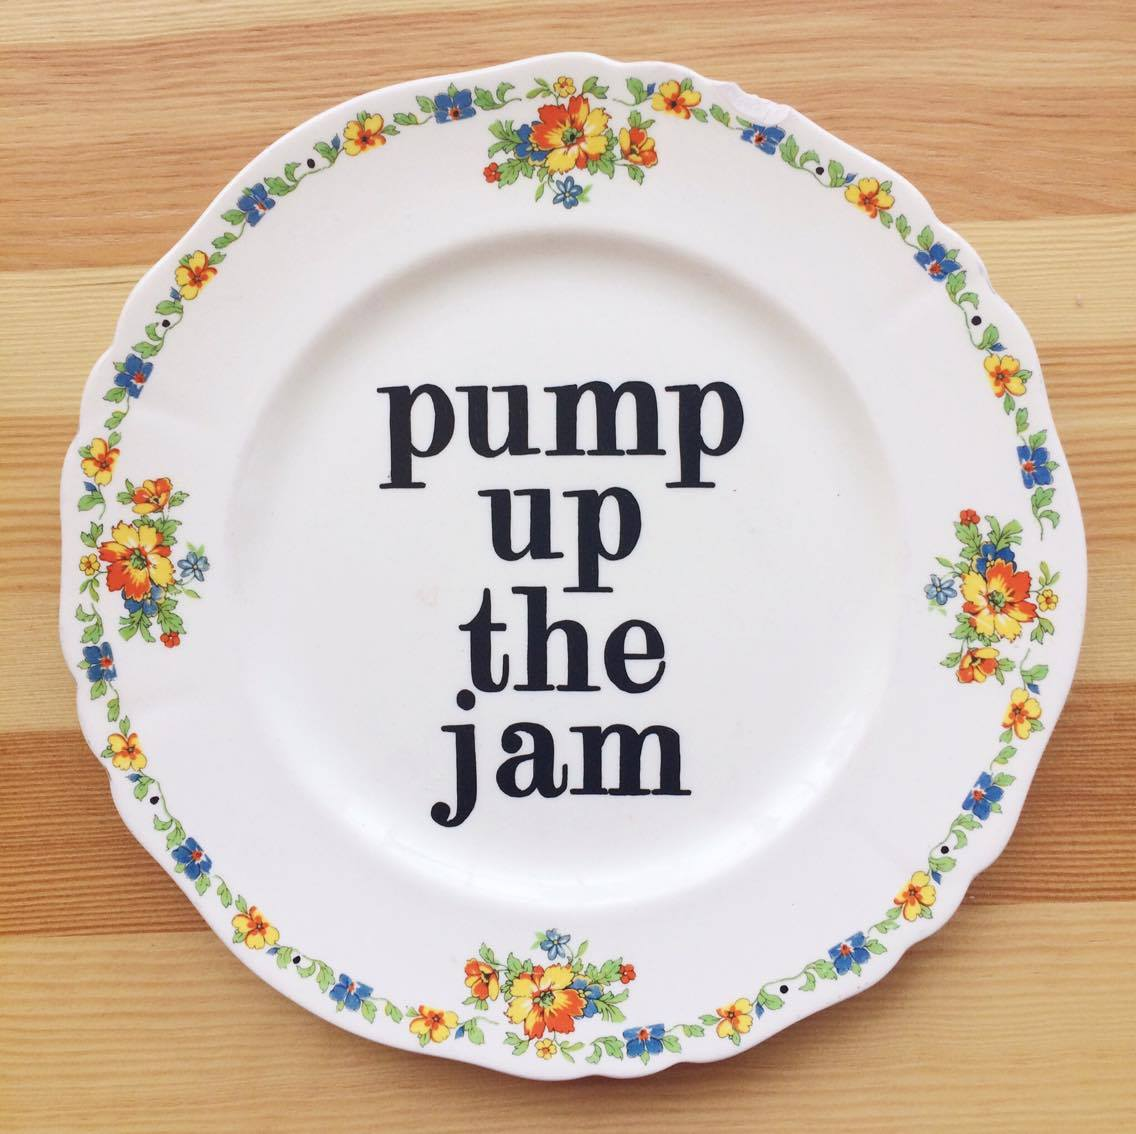 Pump up the jam